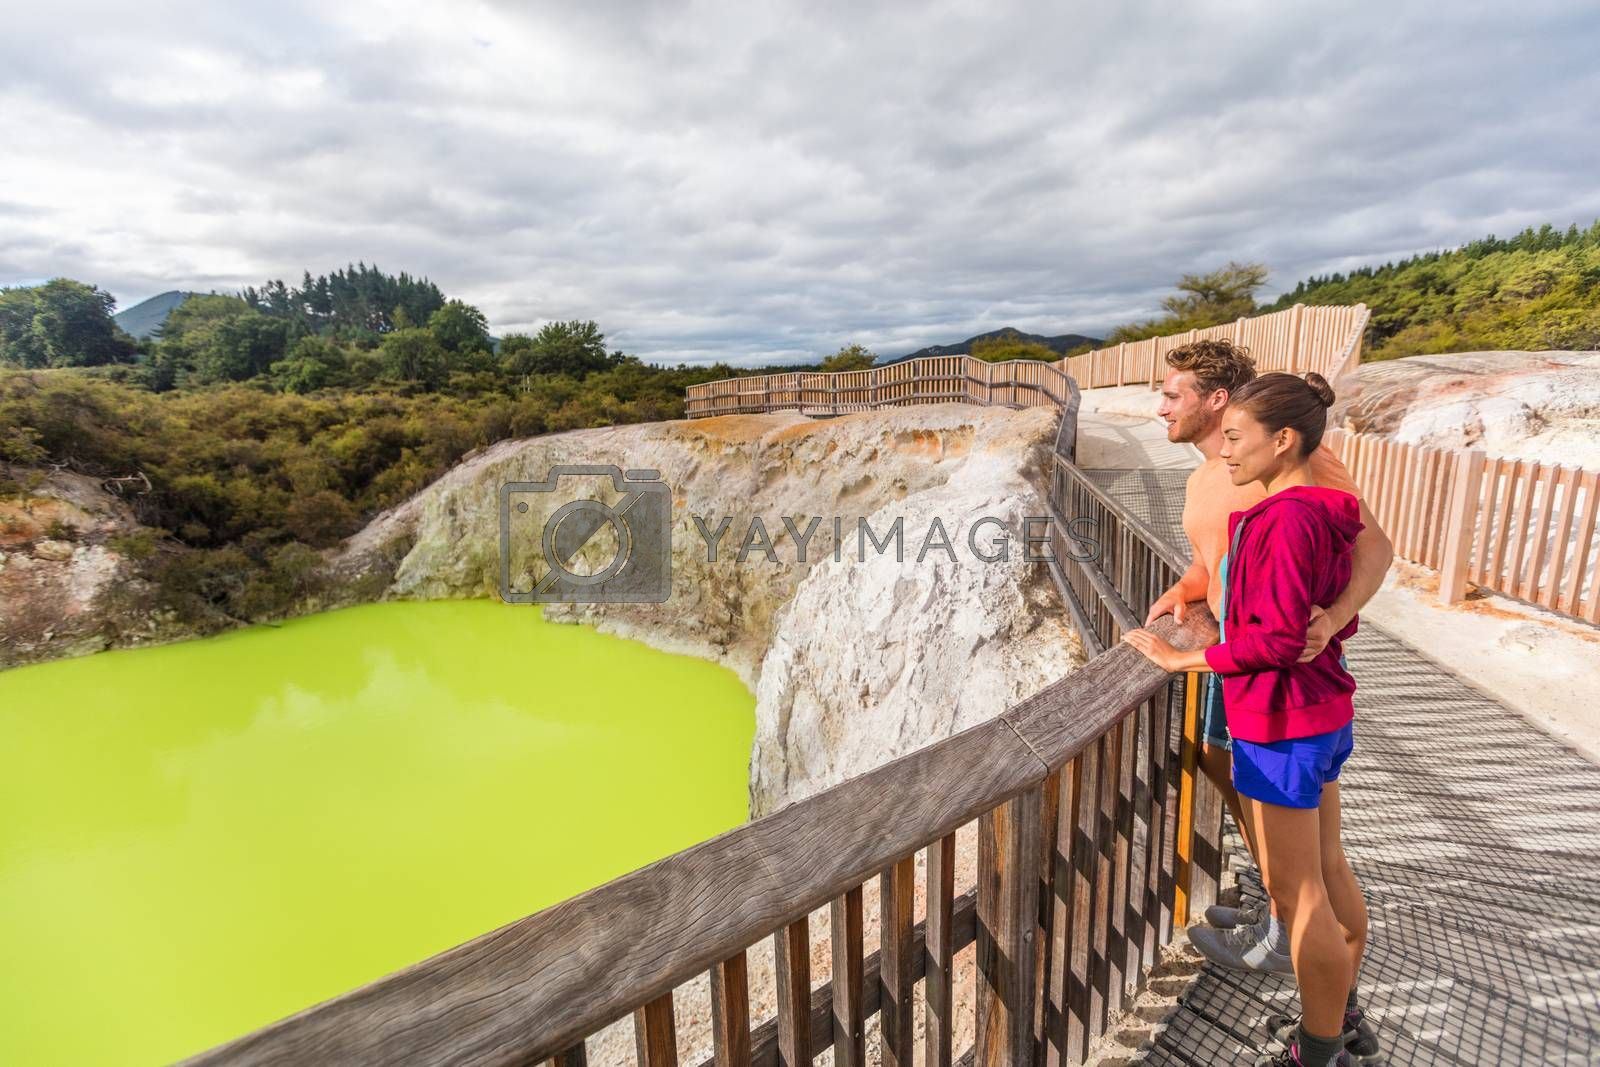 New Zealand travel tourists looking at green pond. Tourist couple enjoying famous attraction on North Island, geothermal pools at Waiotapu, Rotorua.